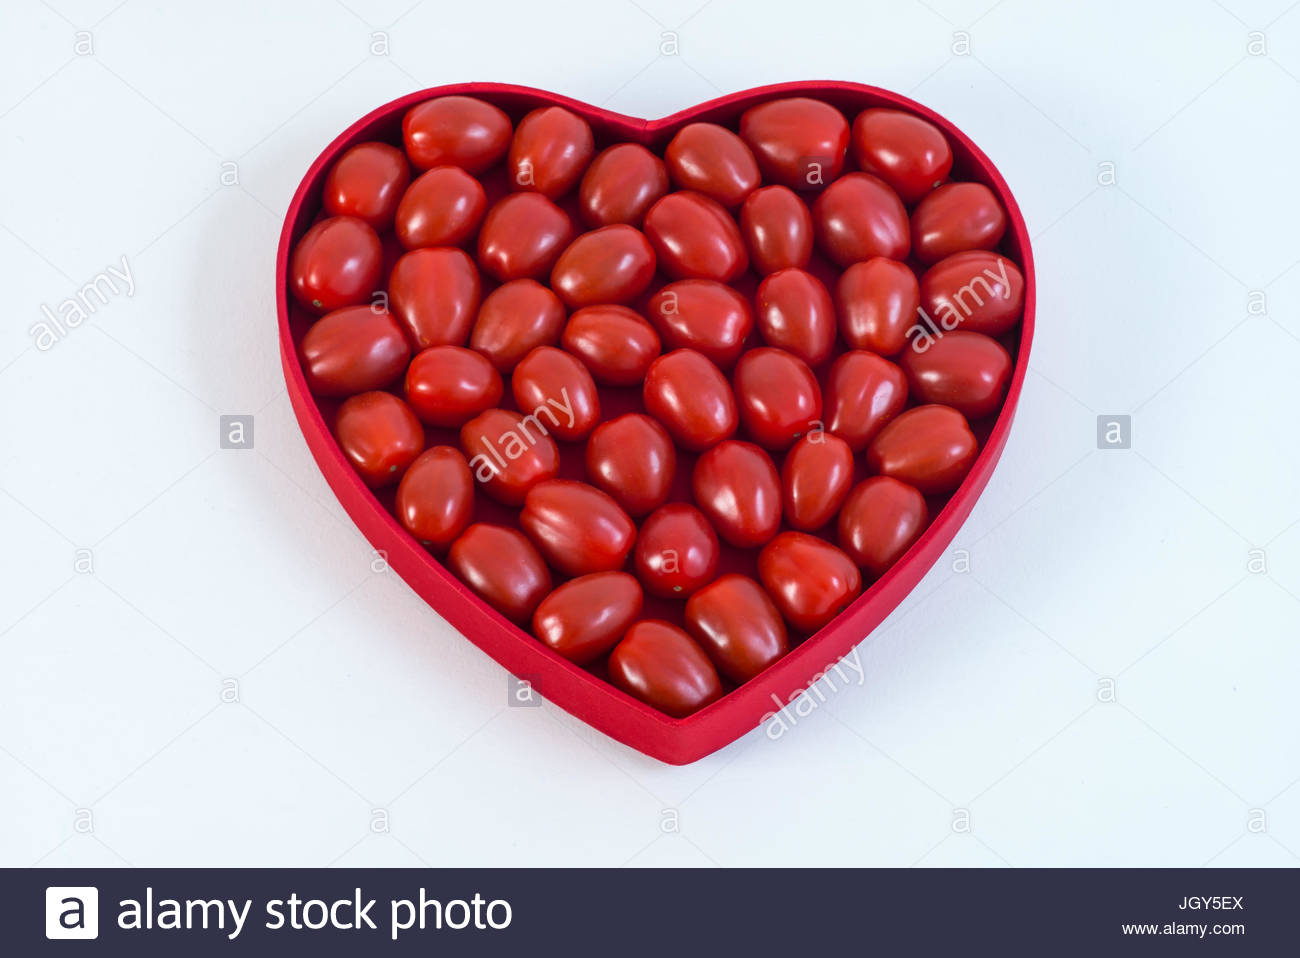 Cherry tomatoes in heart shaped plate against white background Stock Photo